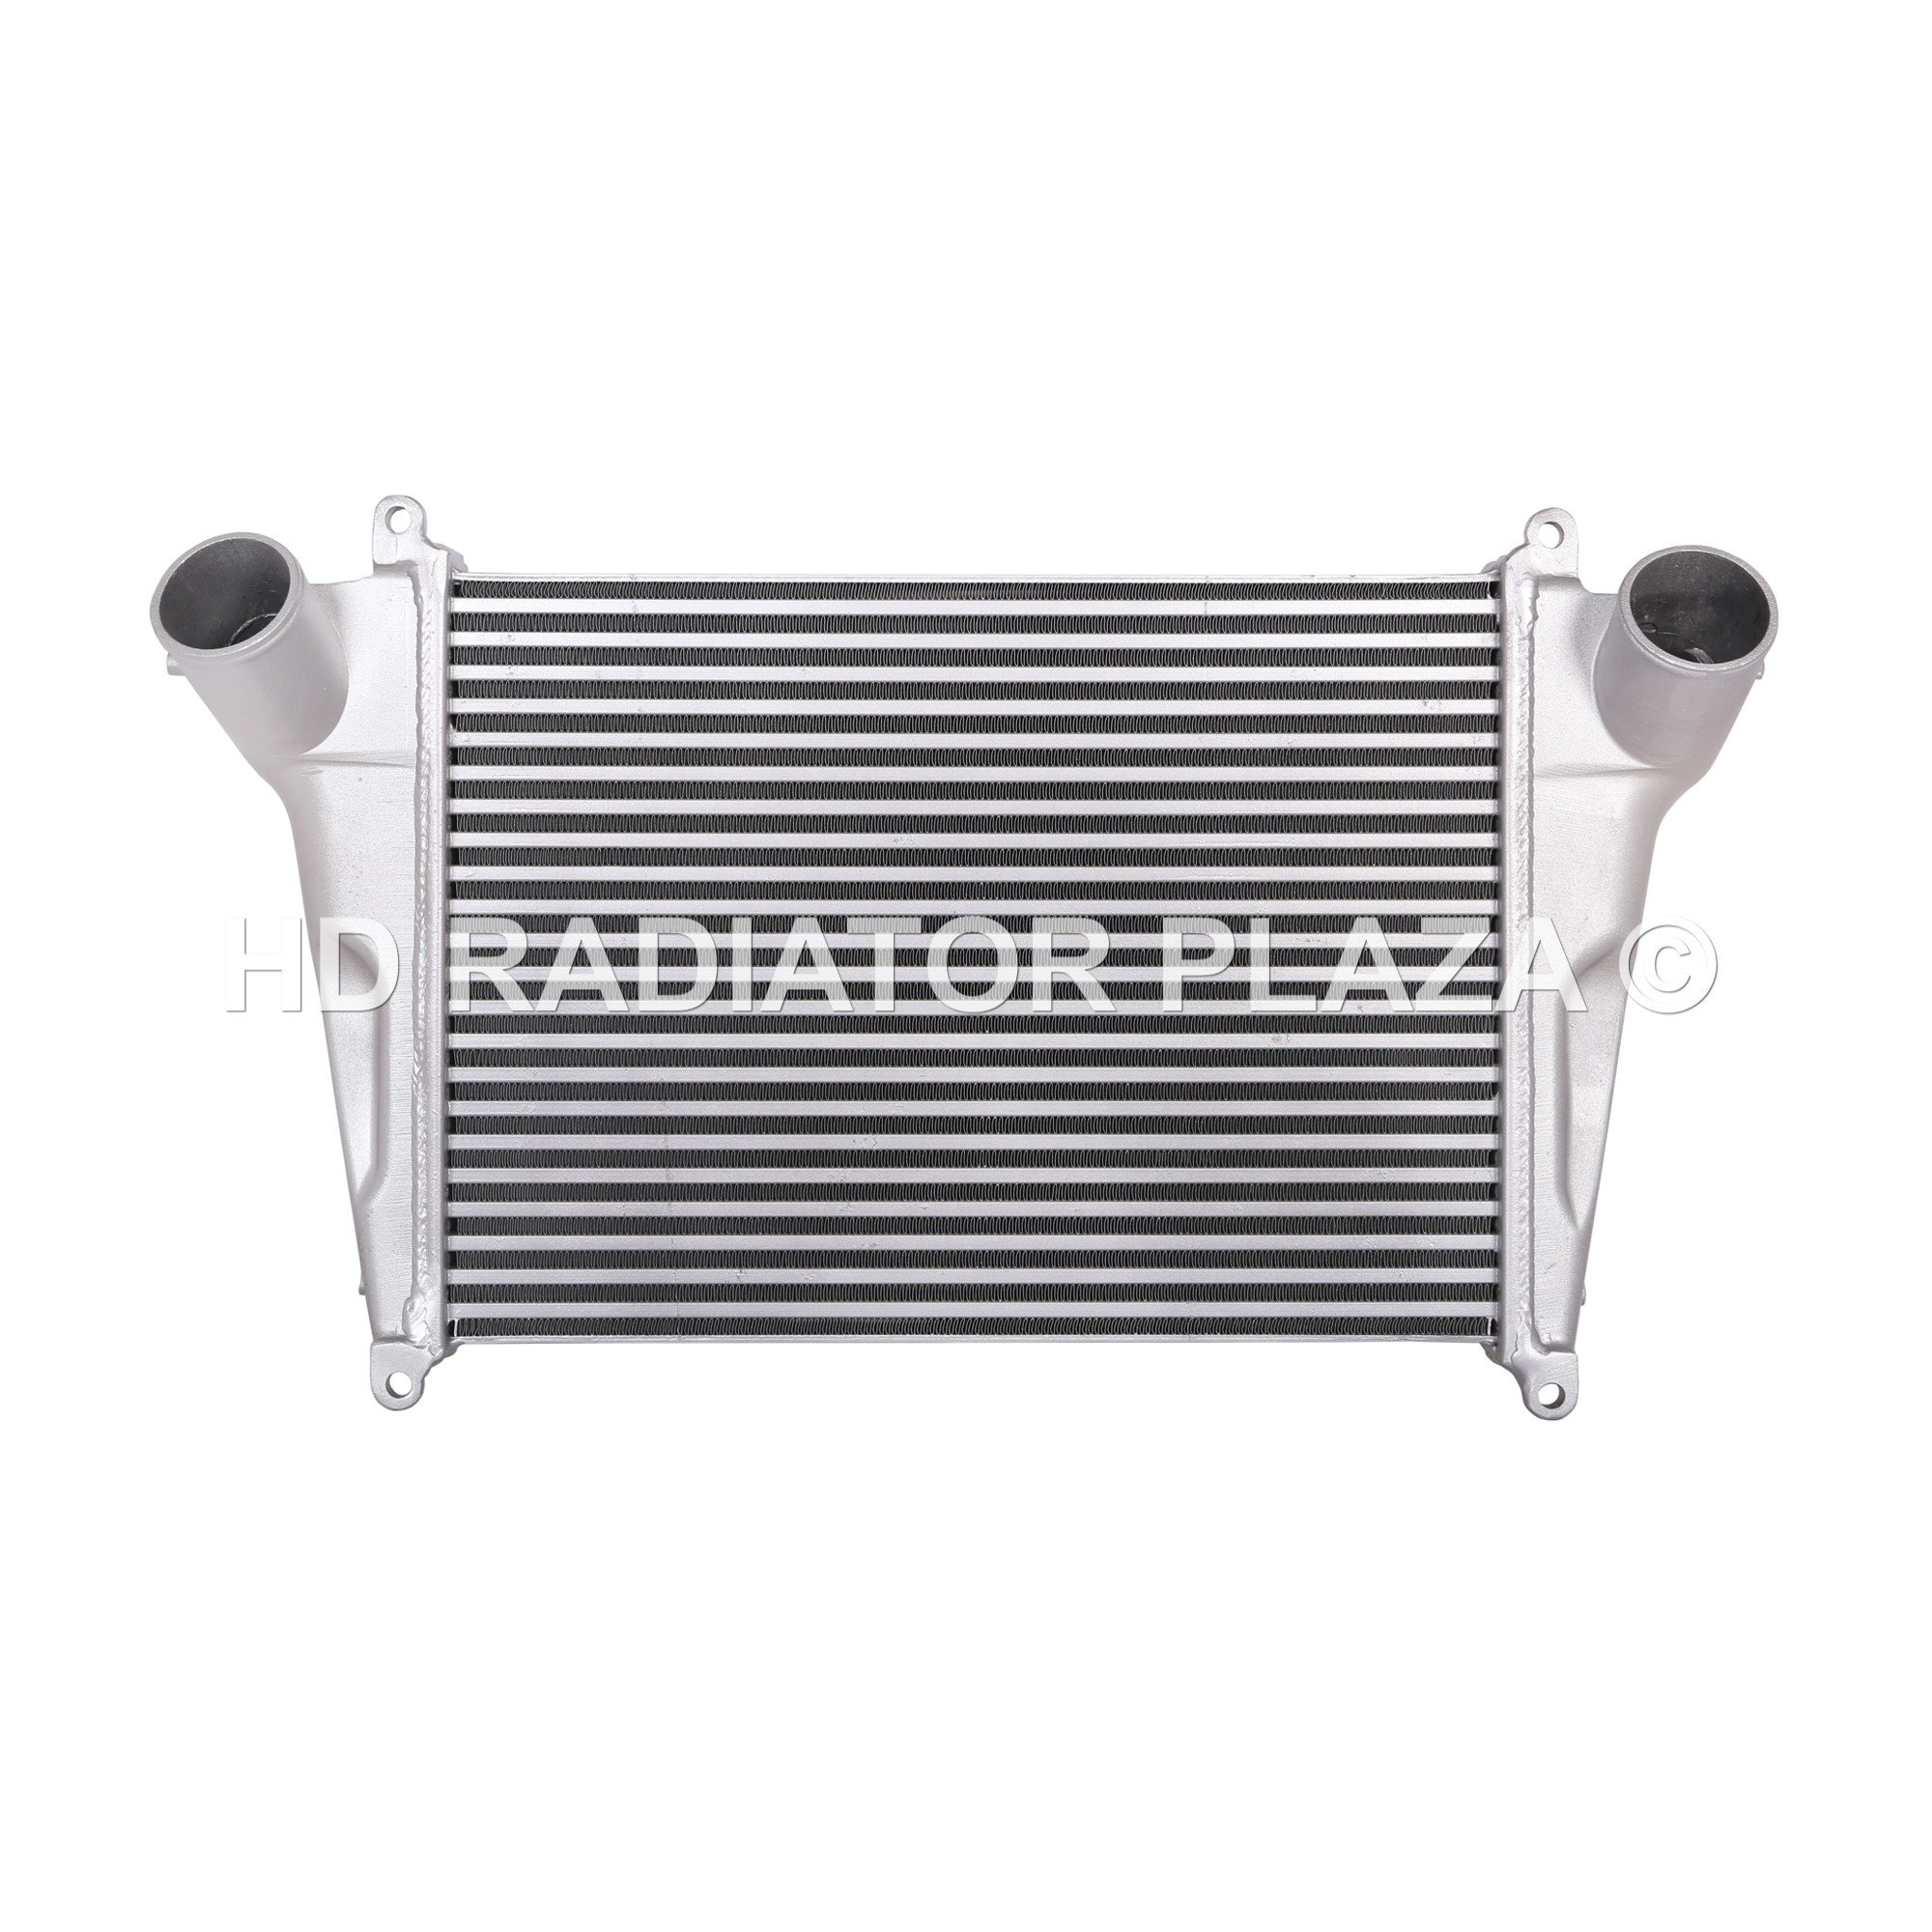 1993-1997 GMC / Isuzu Charge Air Cooler